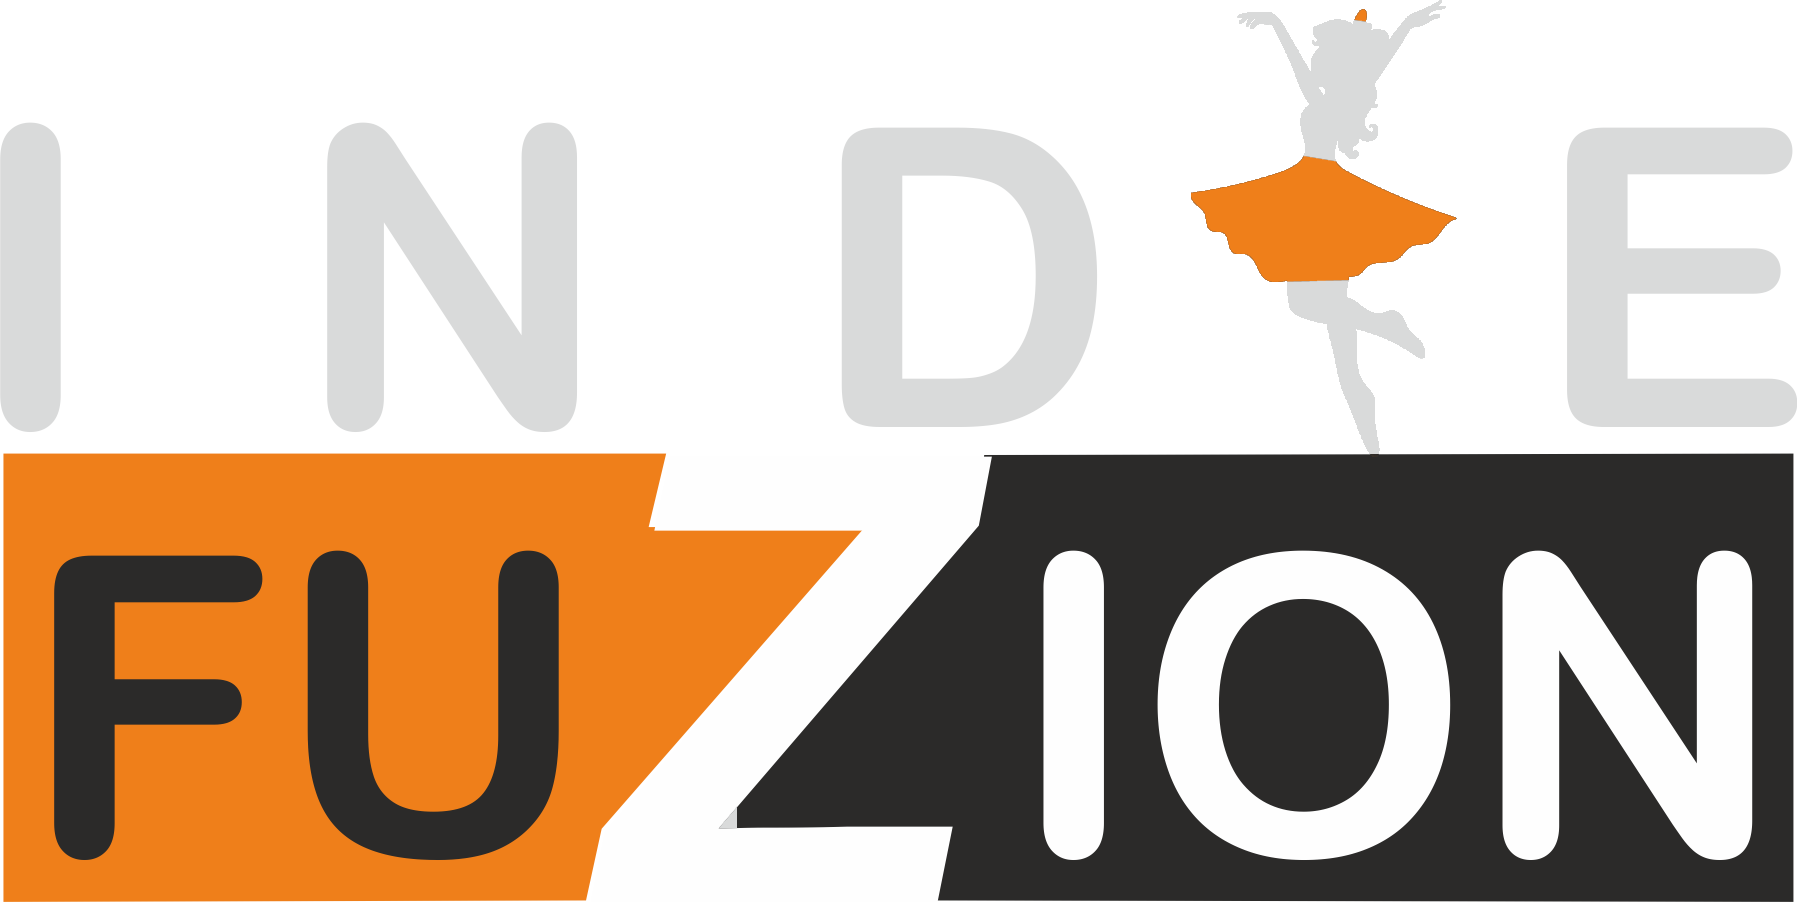 logo_not_found